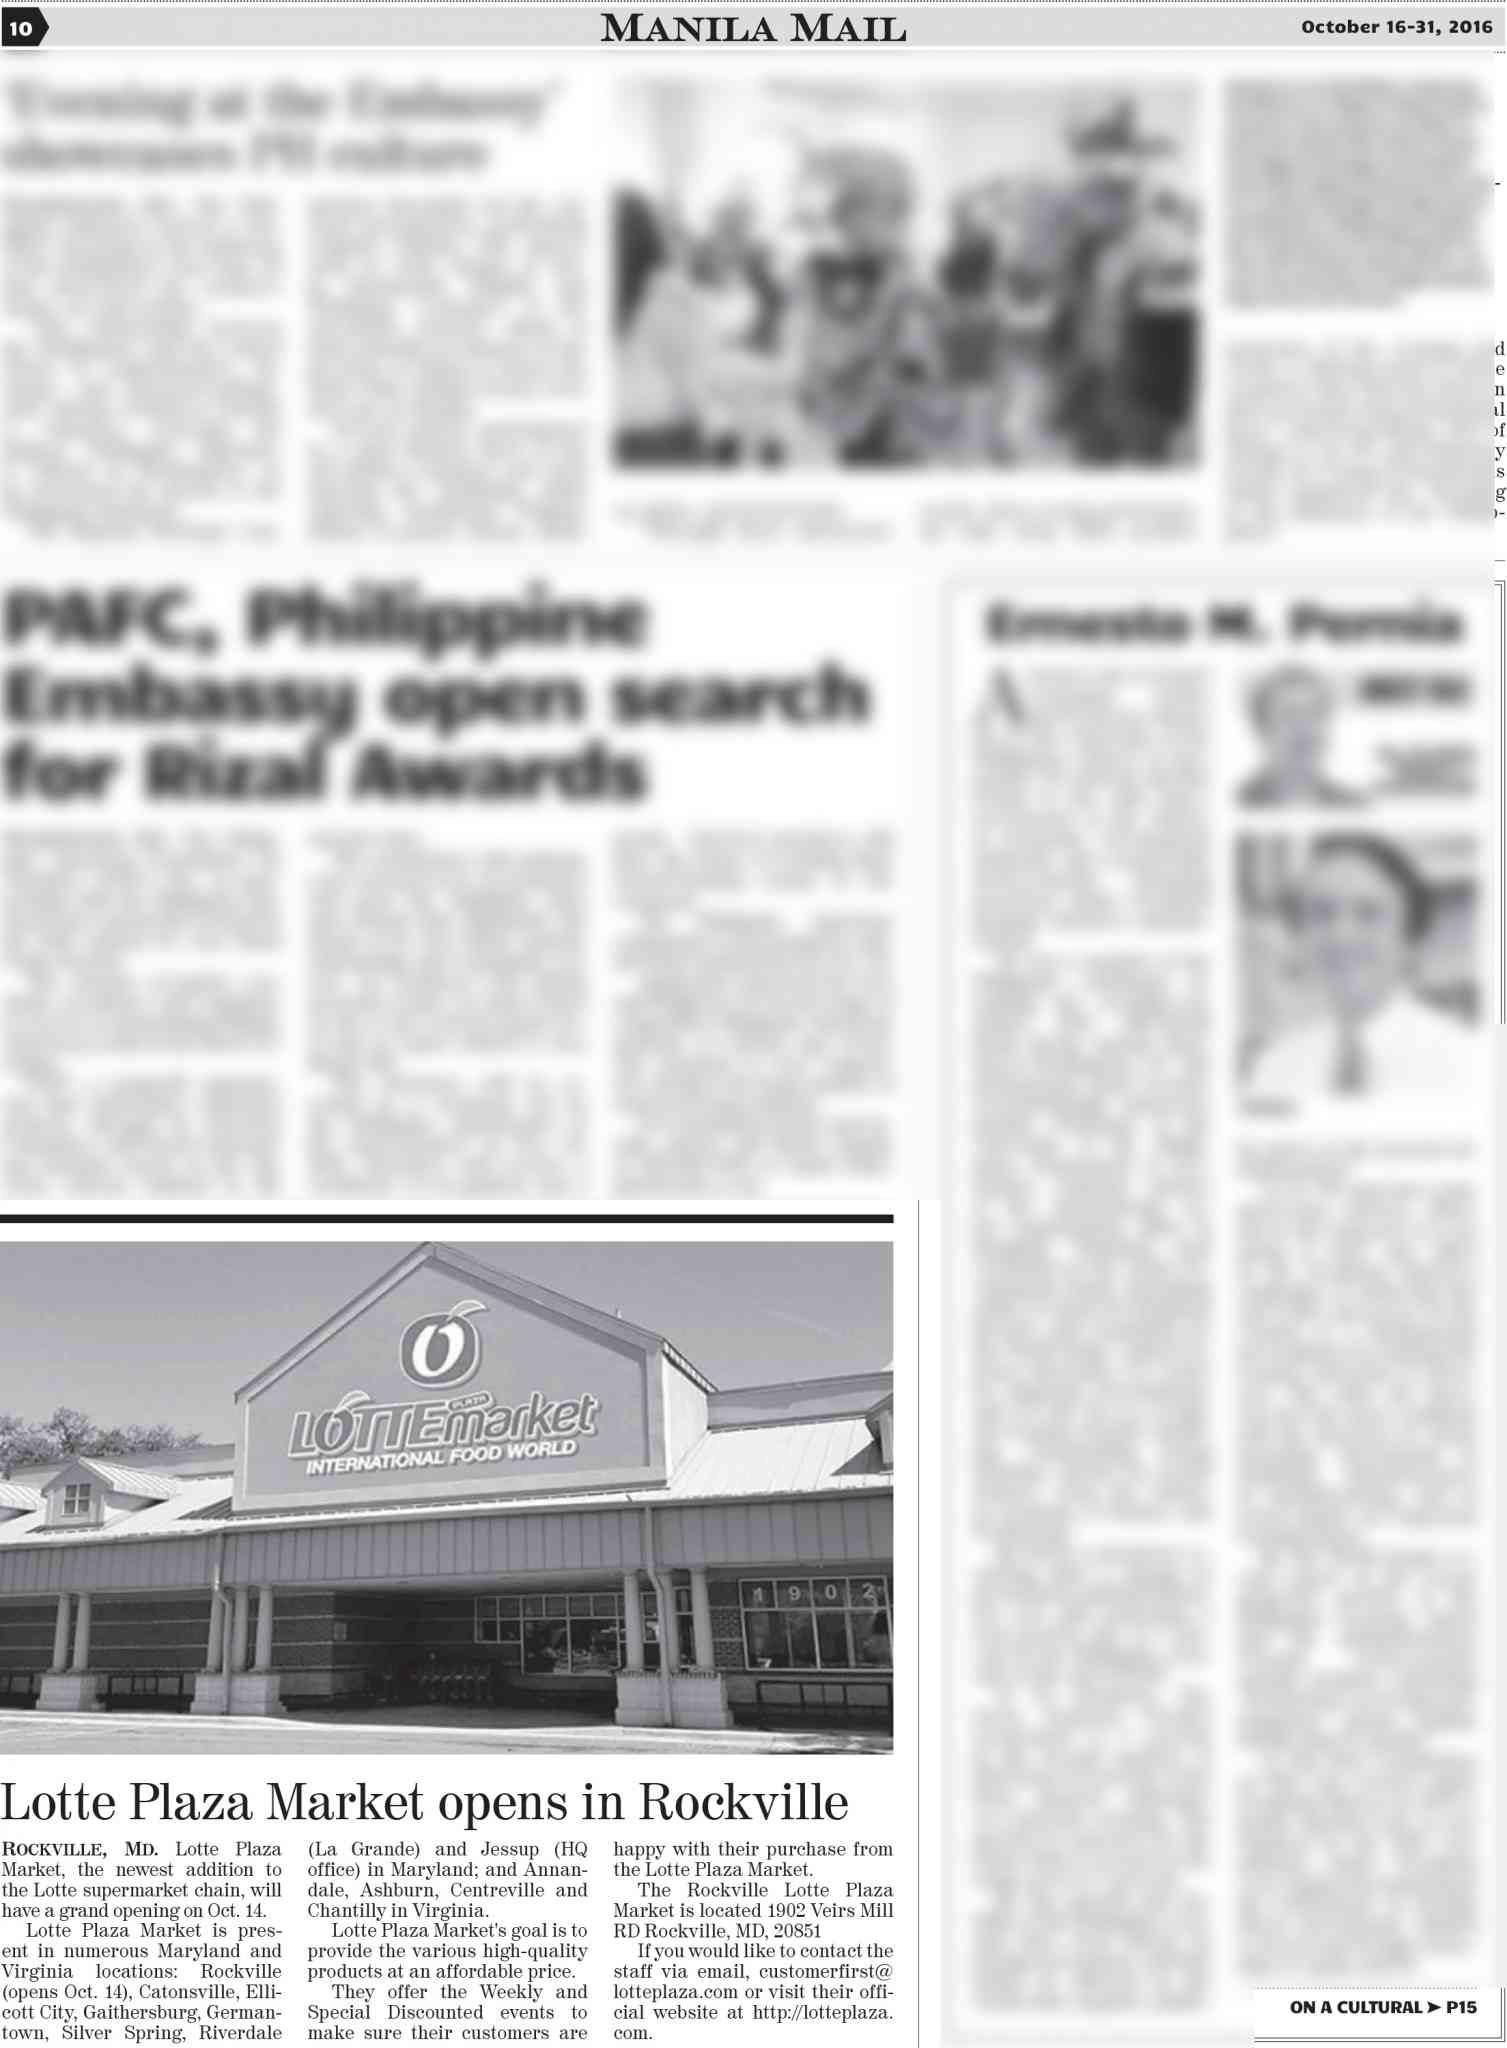 manila-mail-newspaper-for-rockville-lotte-plaza-market-opens